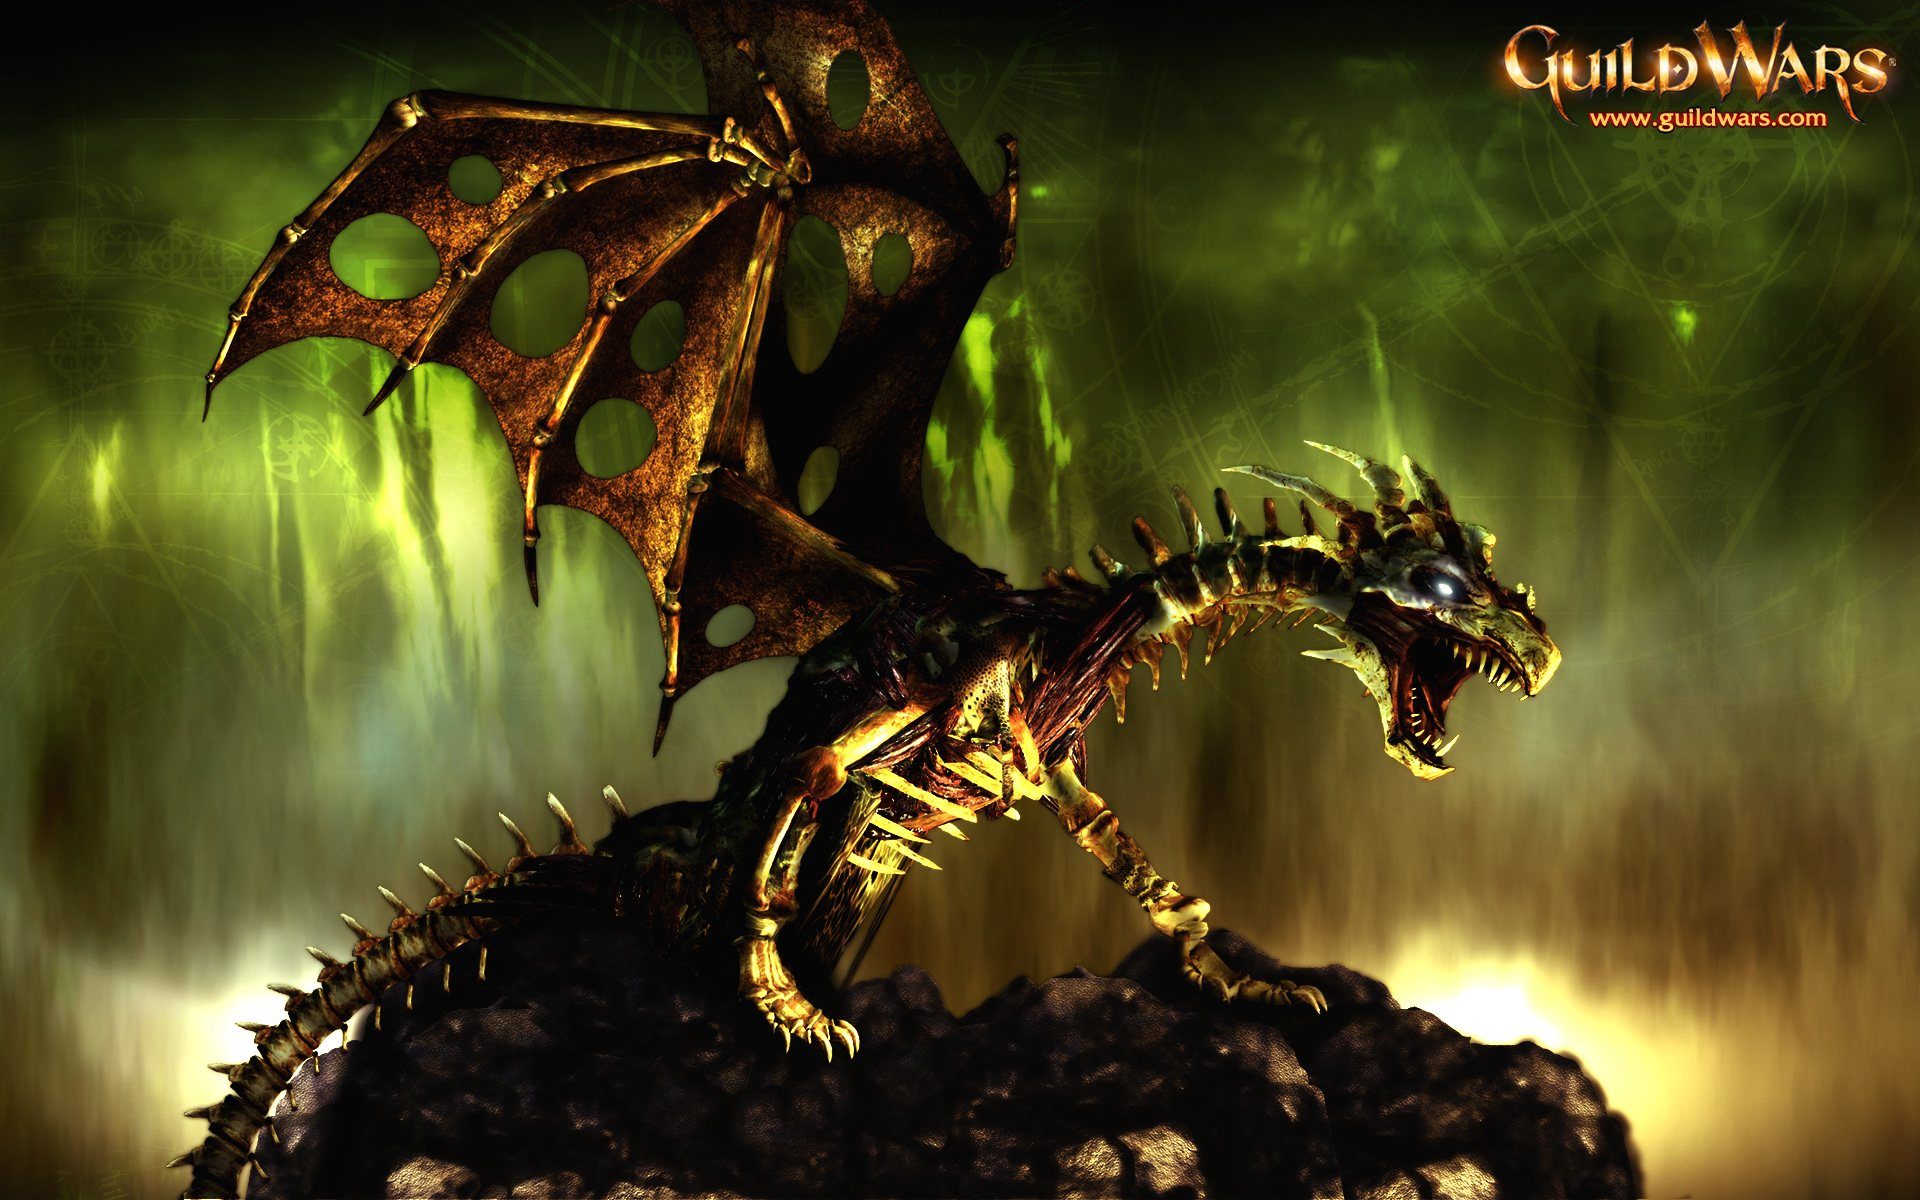 Bone Dragon Guild Wars Wallpaper 1920x1200px